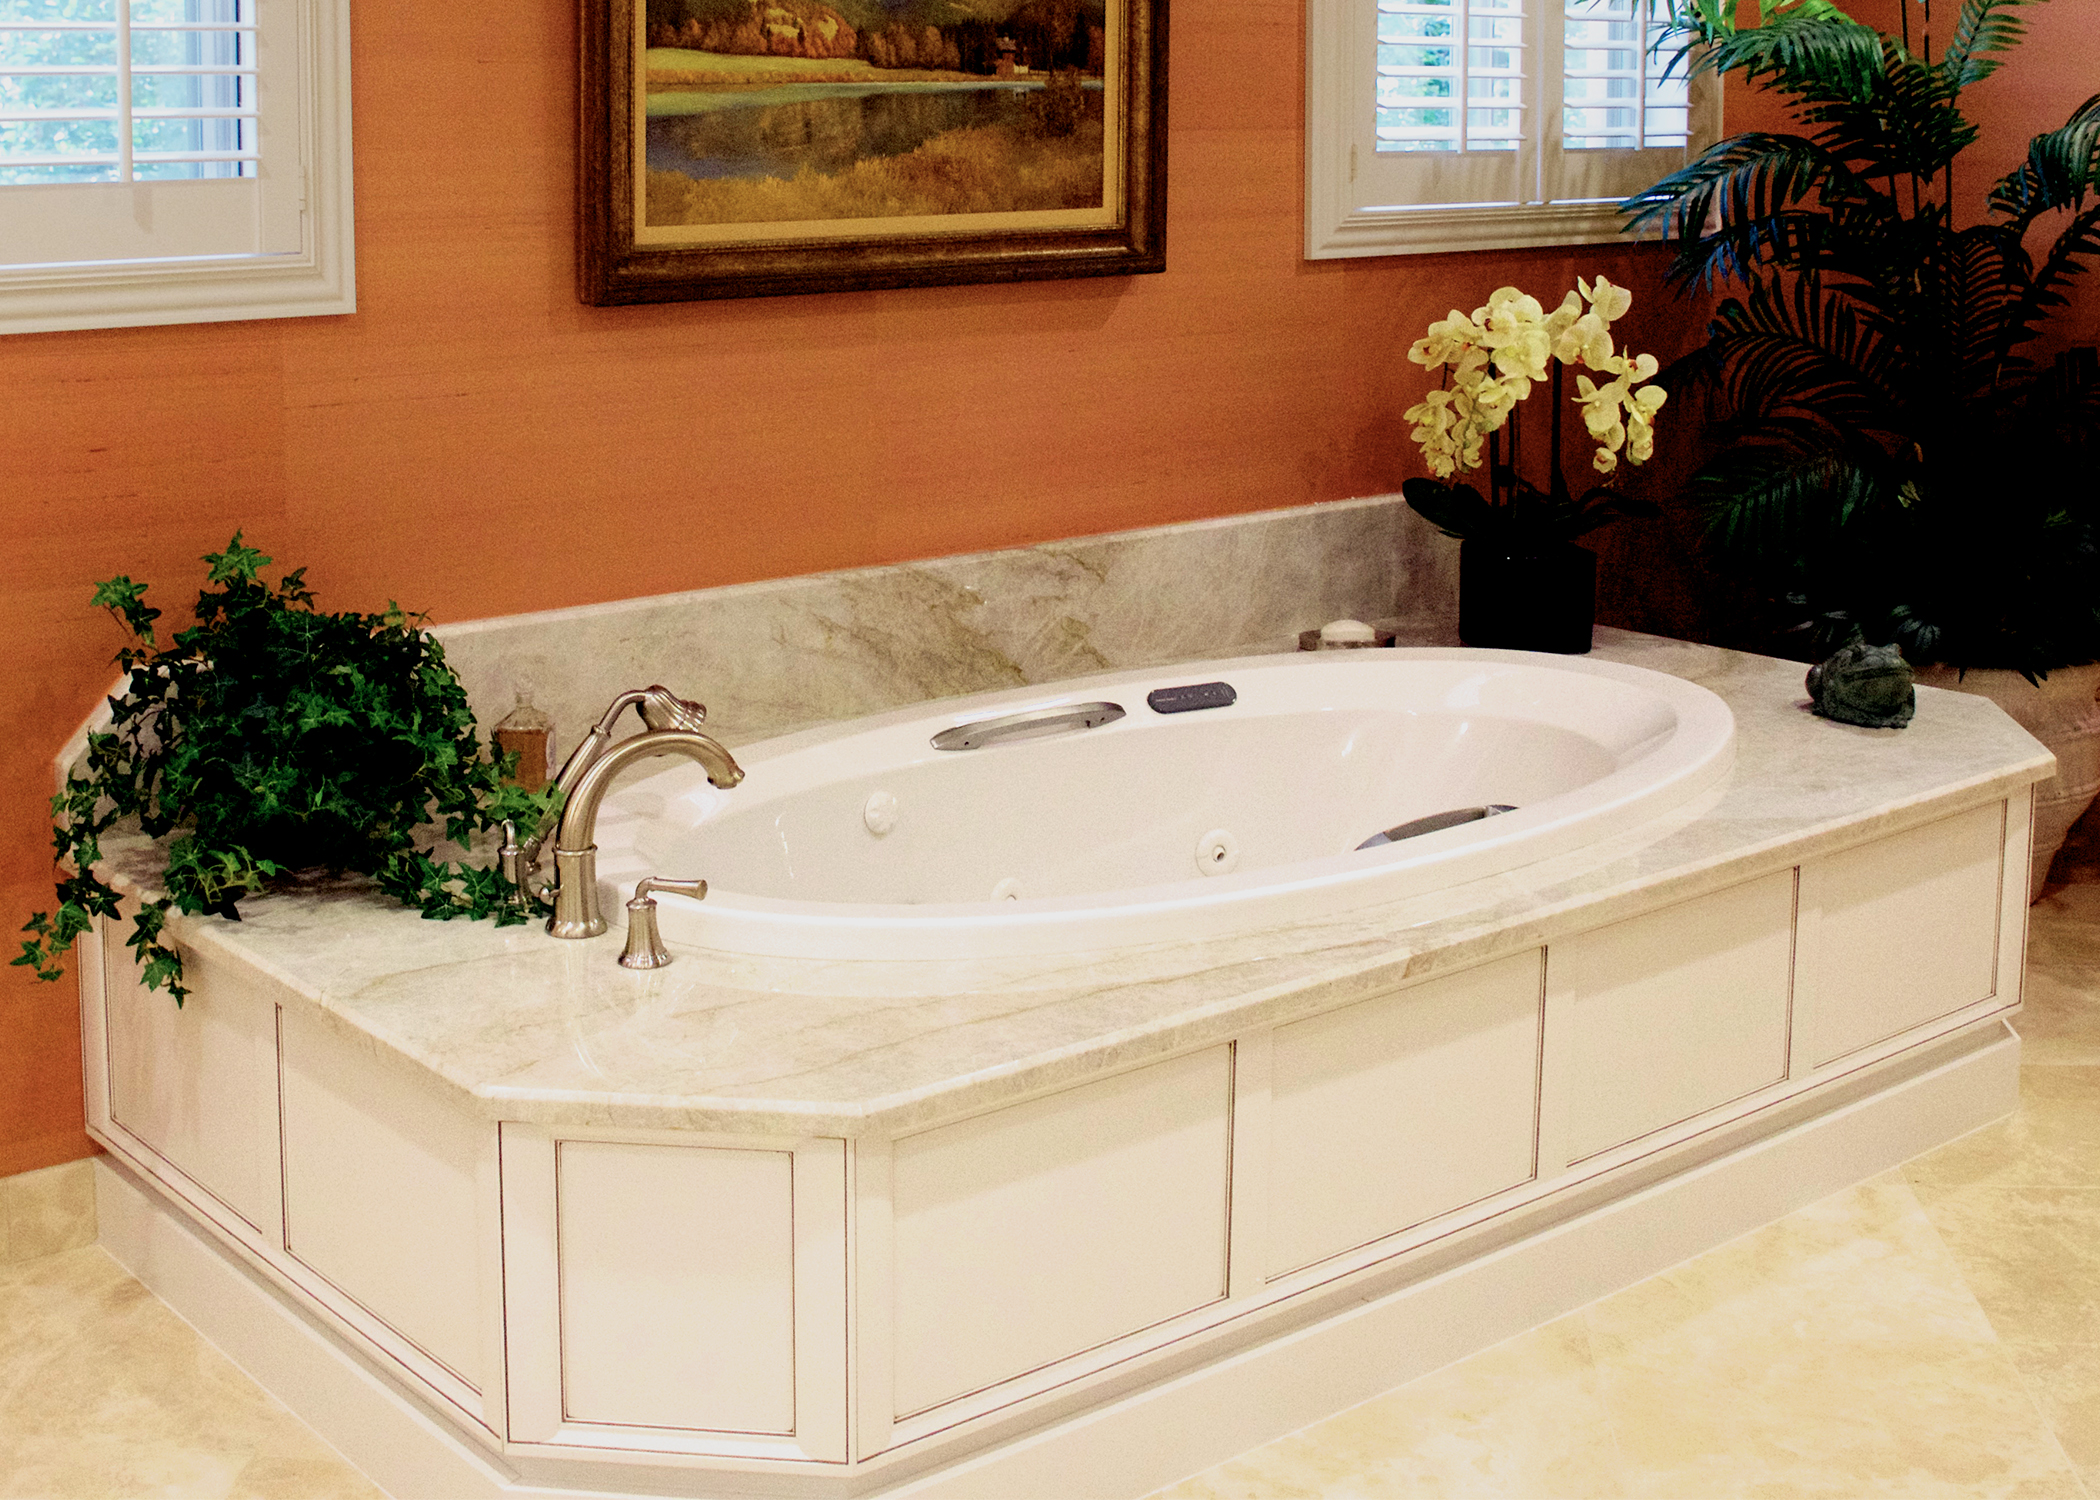 Masterbathroom Tub